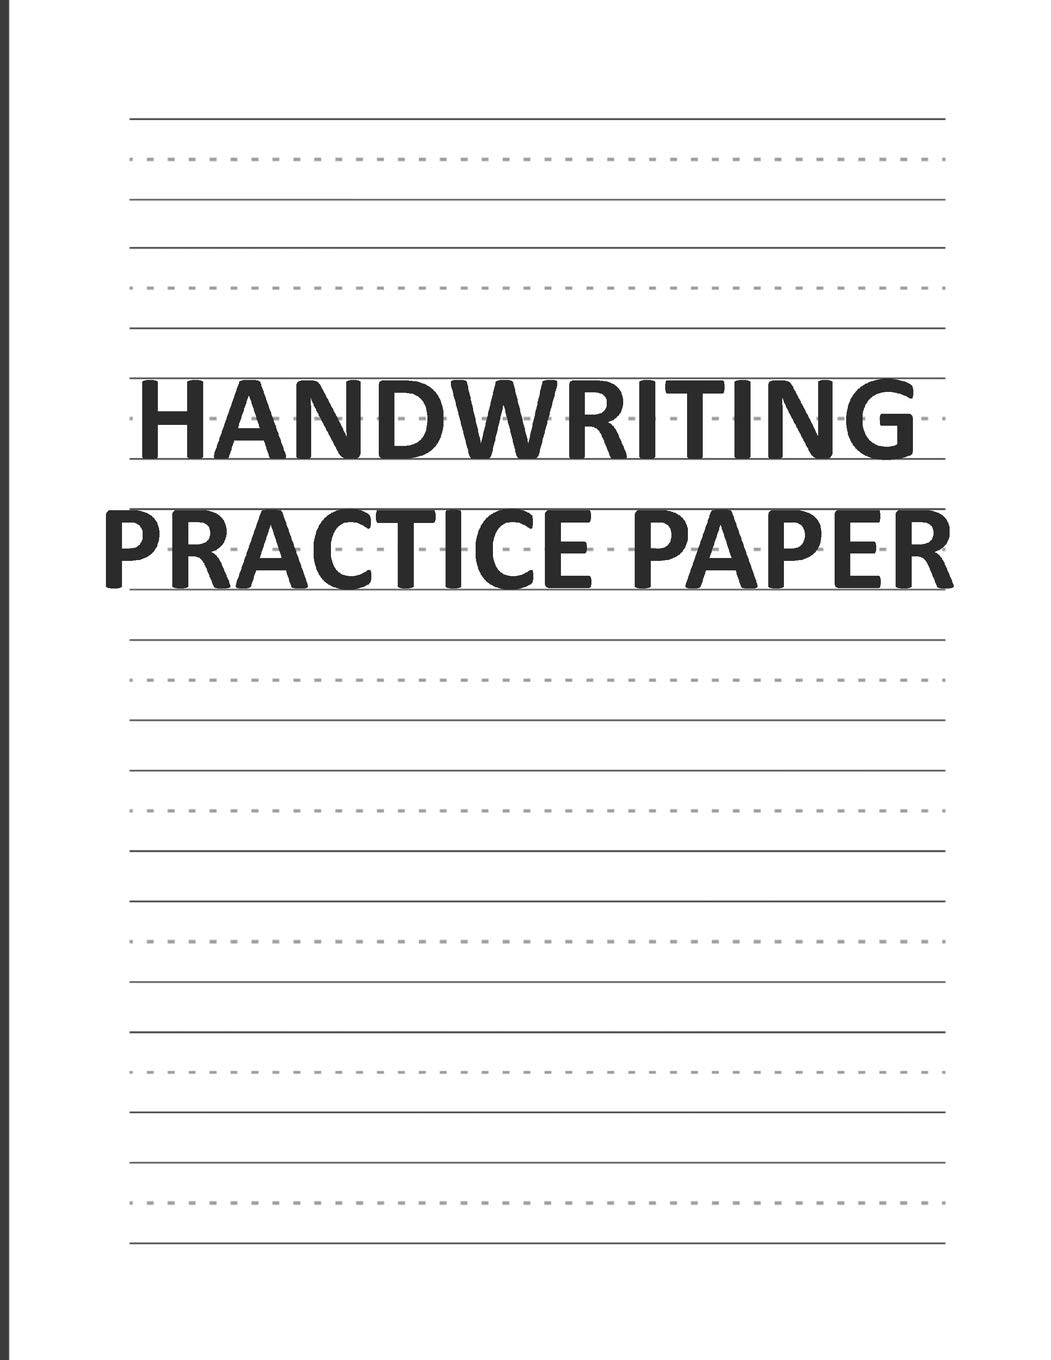 Handwriting Practice Paper Lined Writing Sheets Notebook For Kids